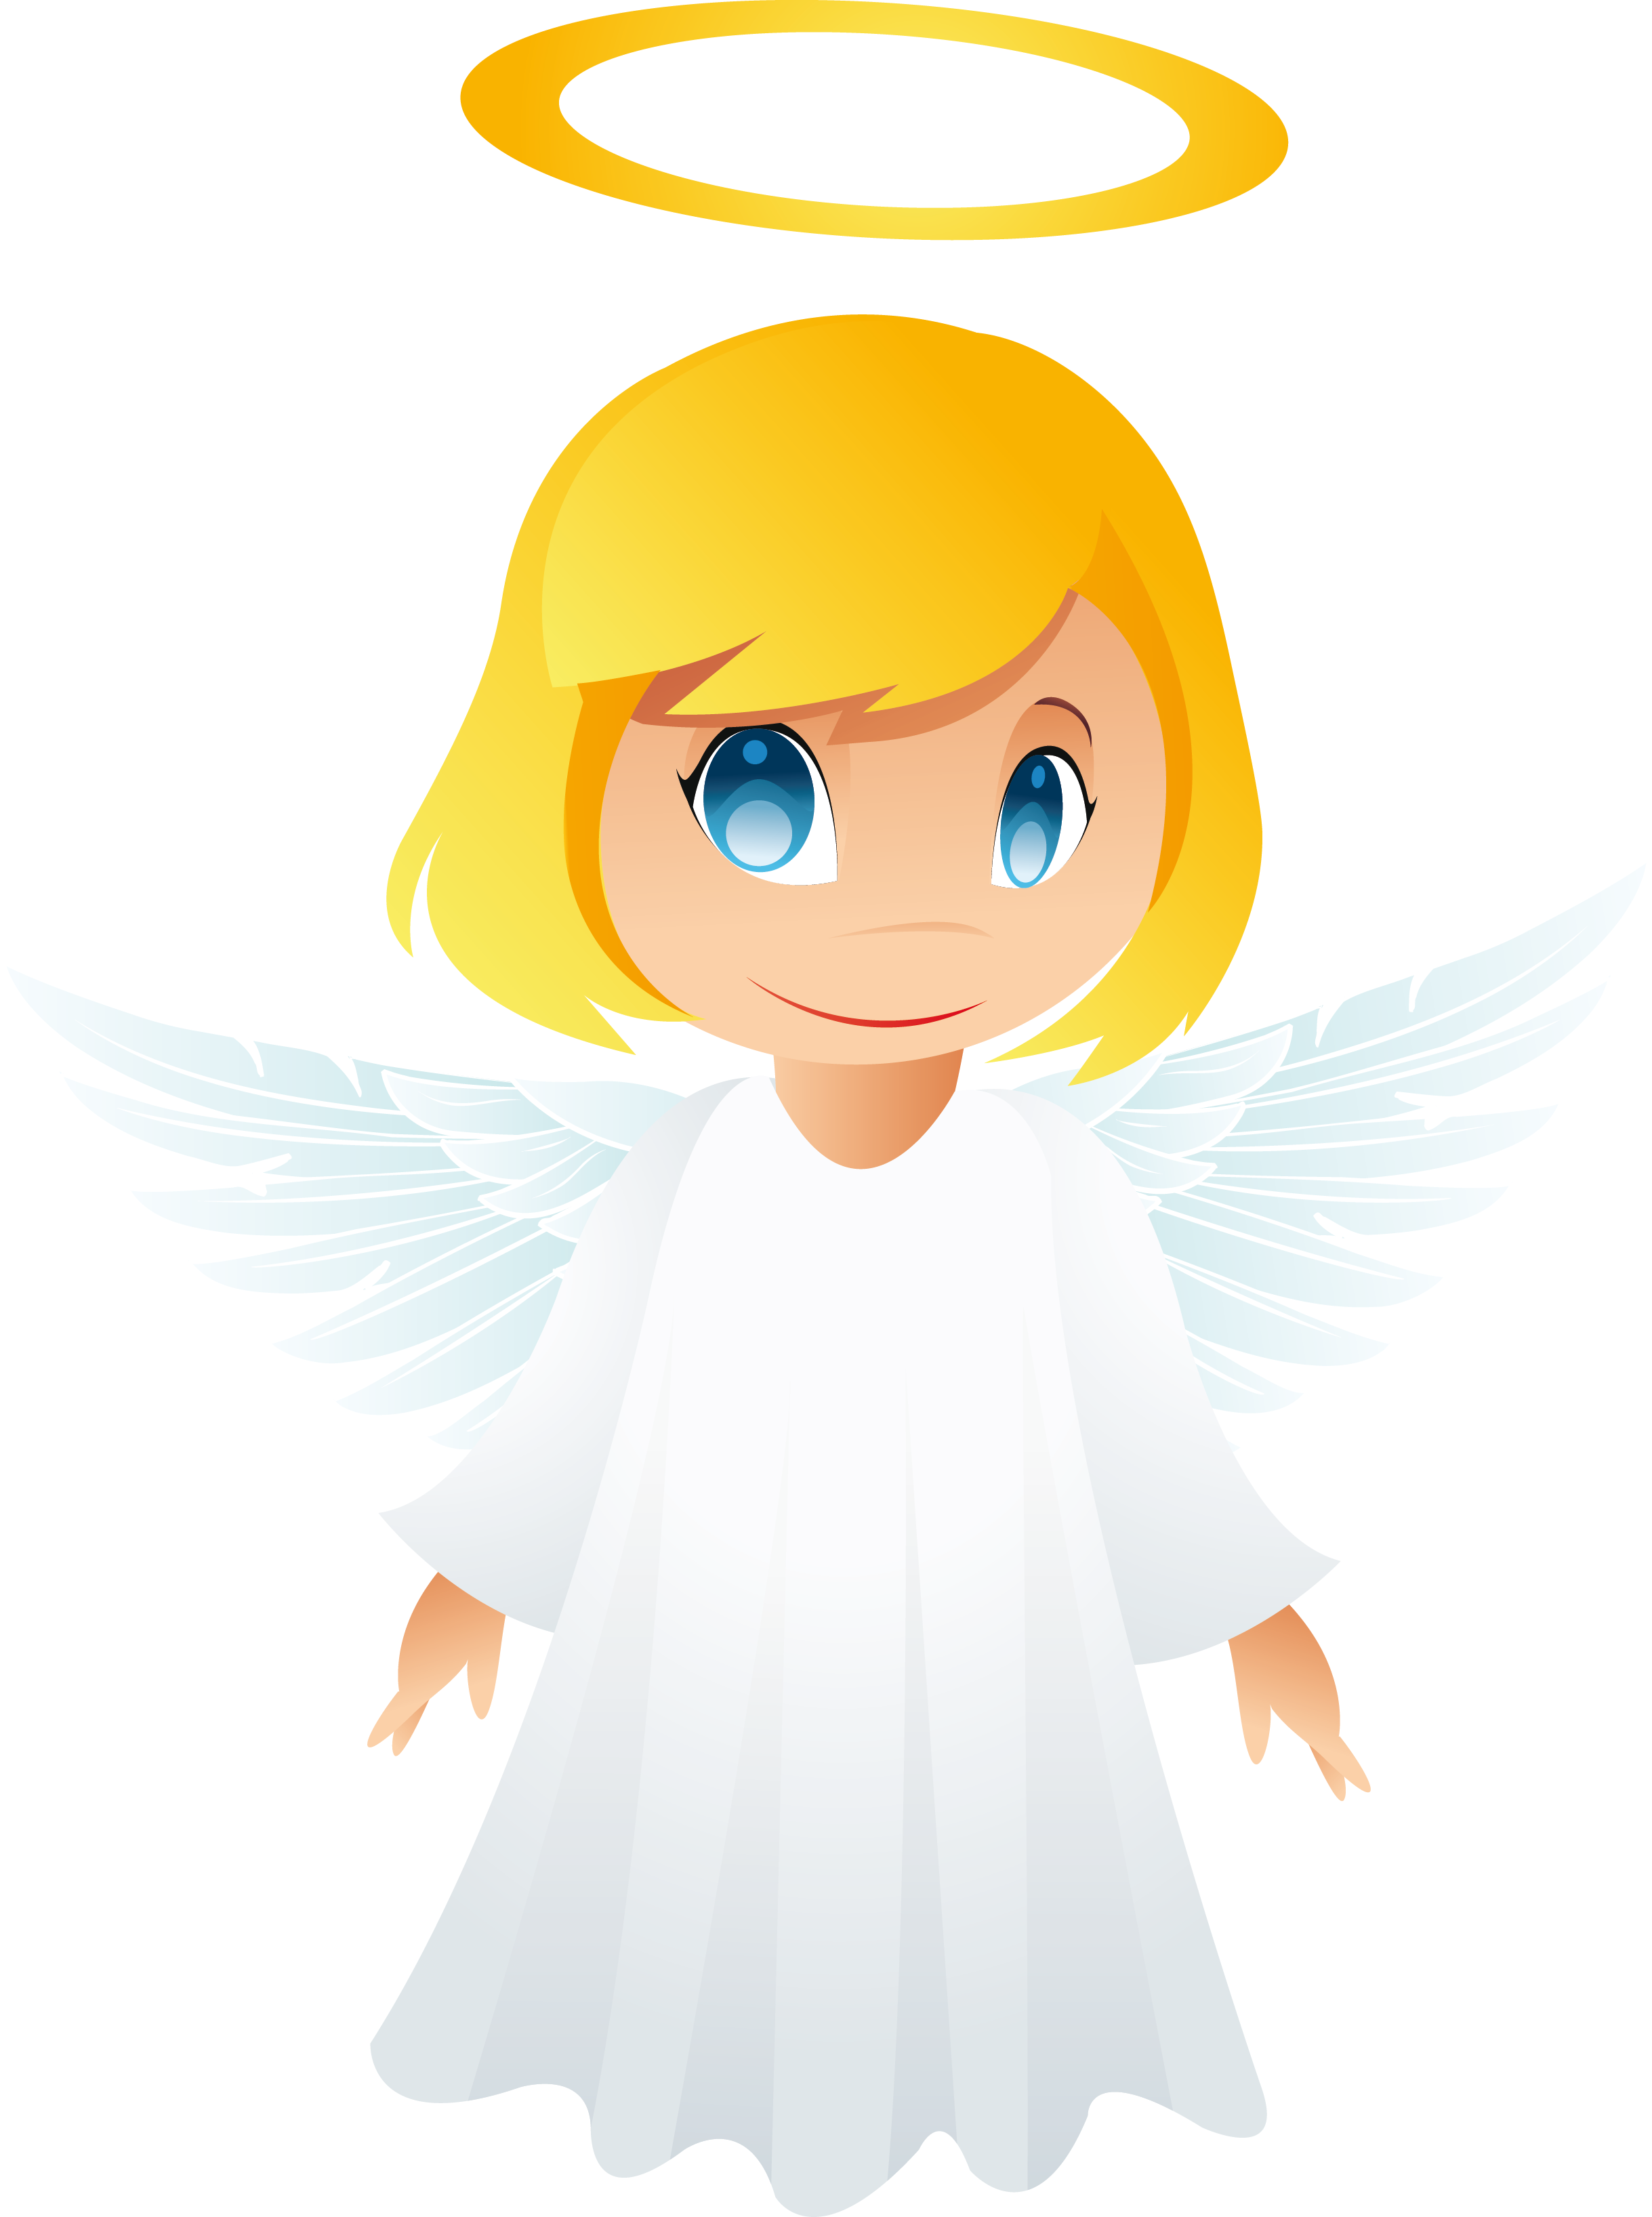 Free clipart cherubs clipart transparent library Angel clipart free graphics of cherubs and angels the cliparts ... clipart transparent library